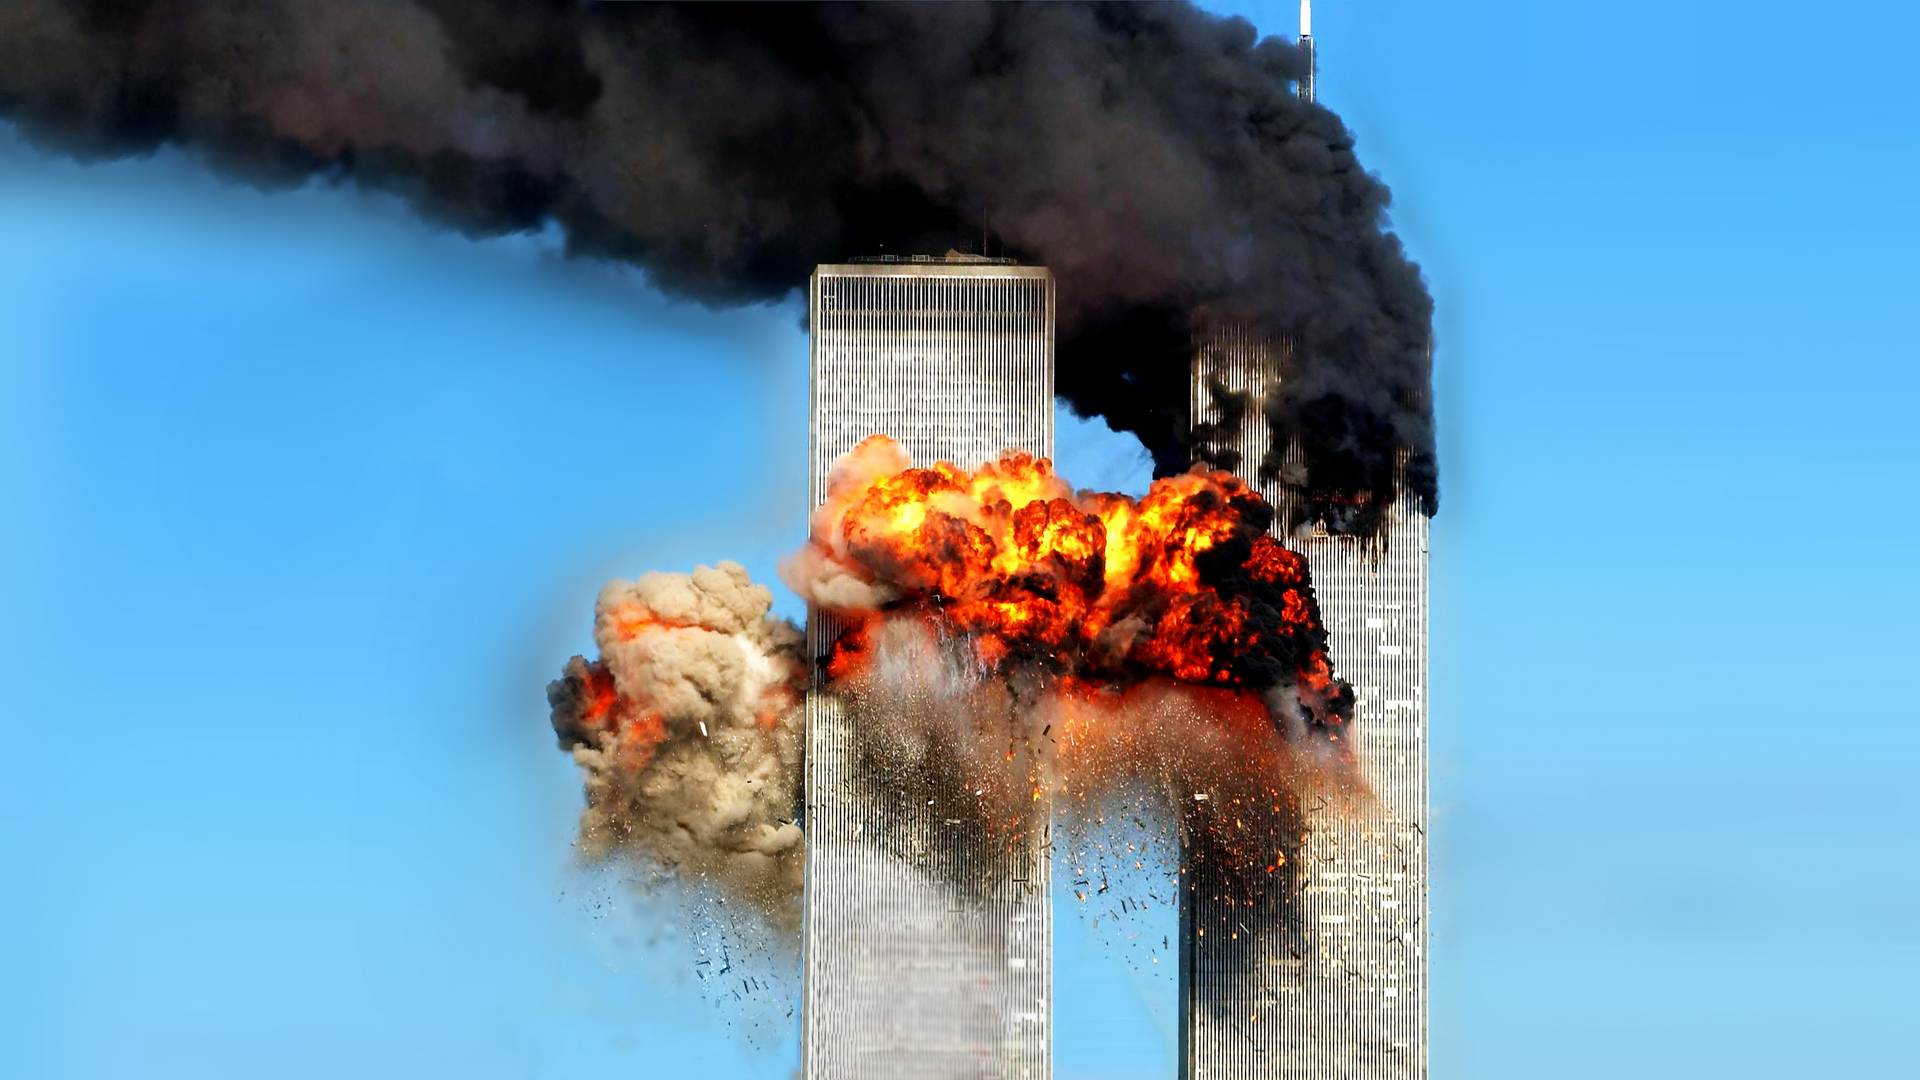 World Trade Center 911 Wallpaper by jaksonstoker 1920x1080